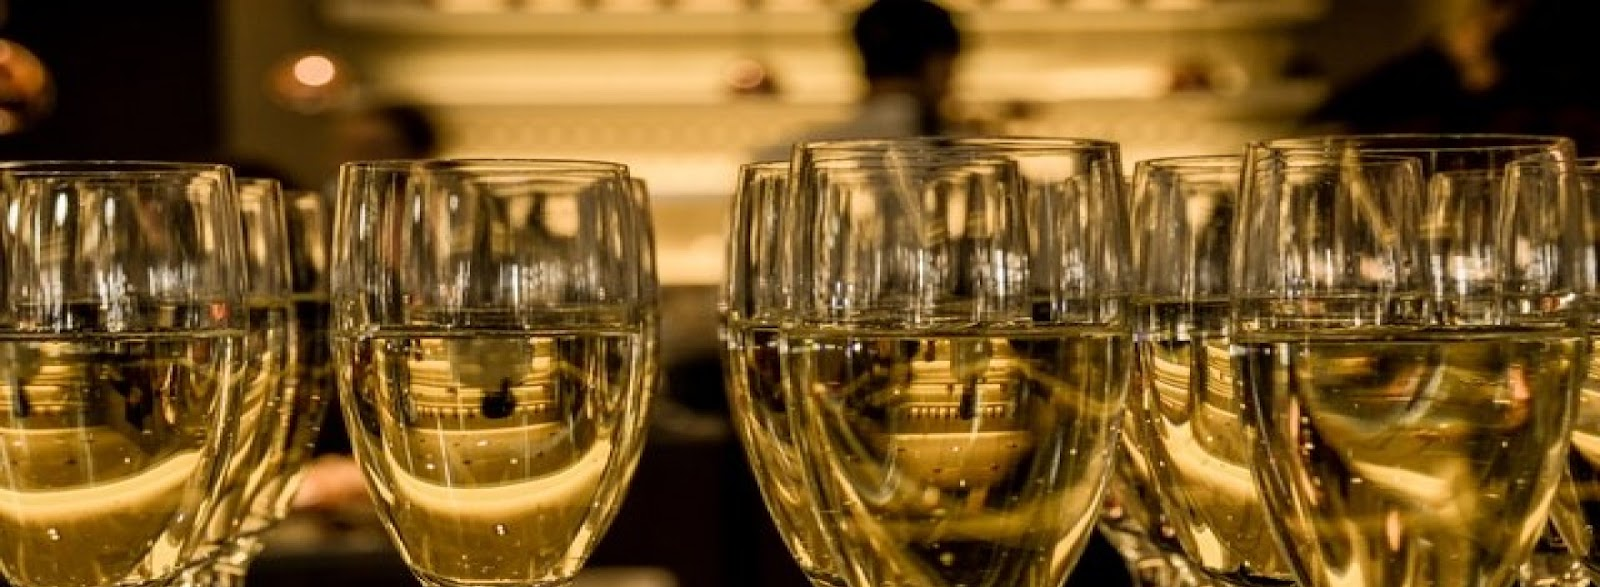 gallery/new-year-s-eve-ceremony-champagne-sparkling-wine